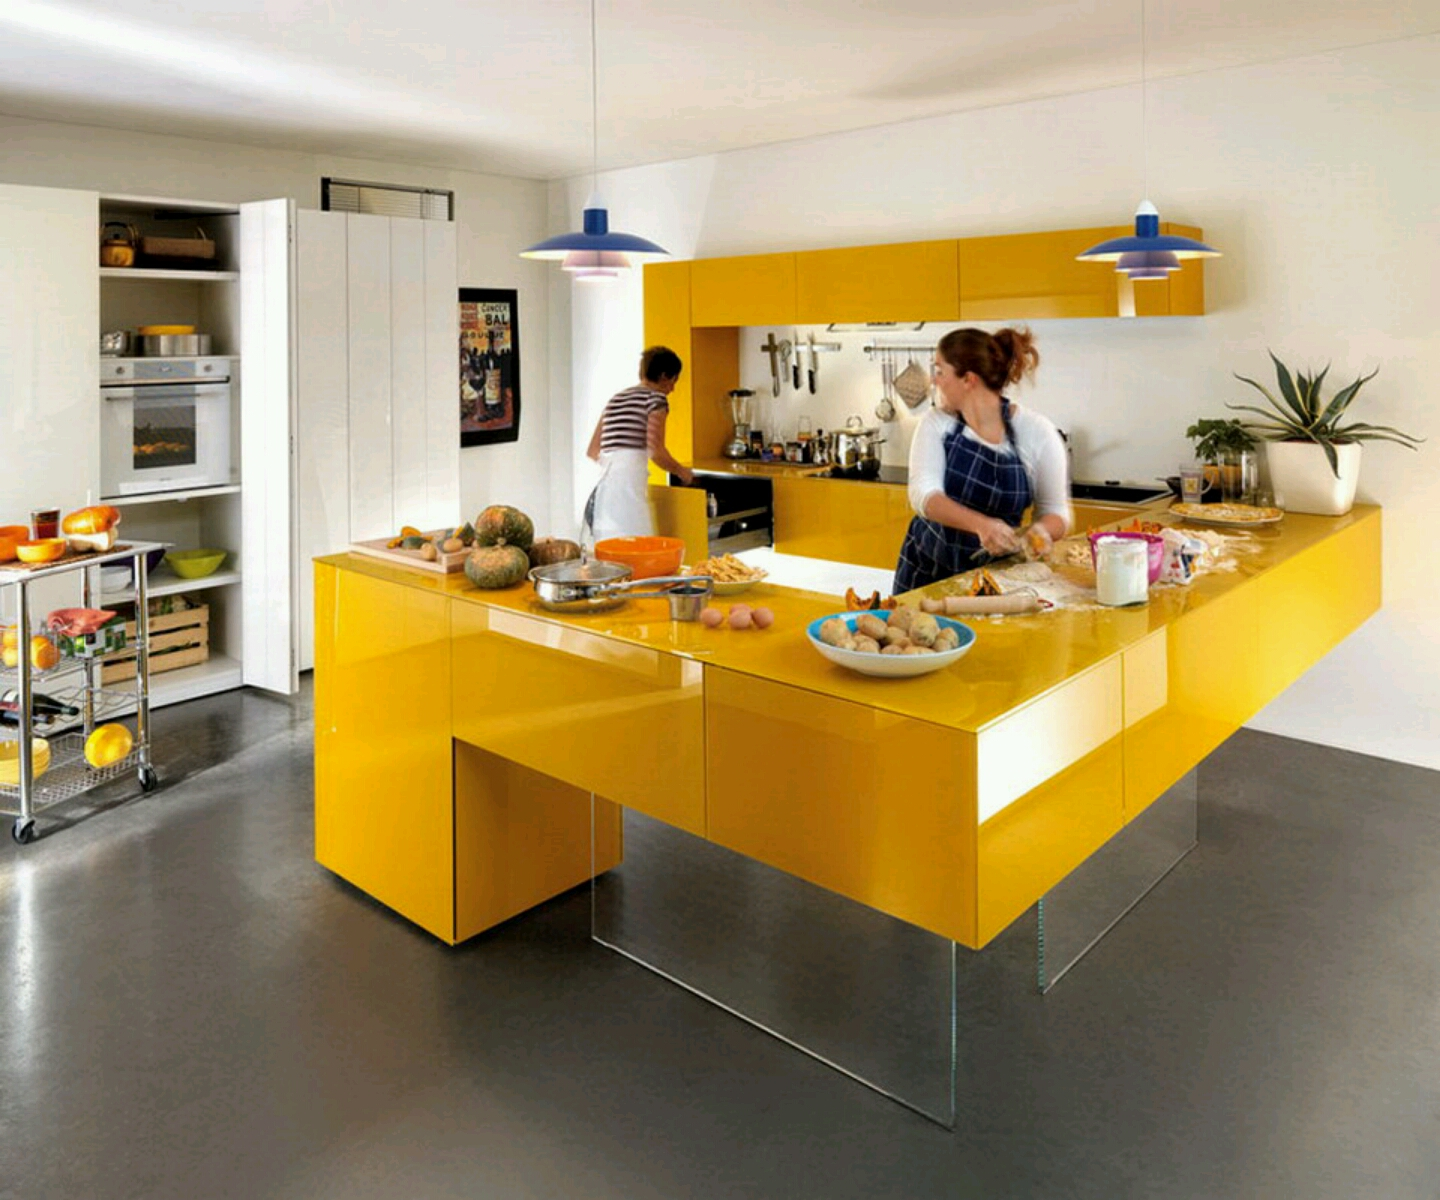 Modern kitchen cabinets designs ideas furniture gallery - Kitchen styles and designs ...